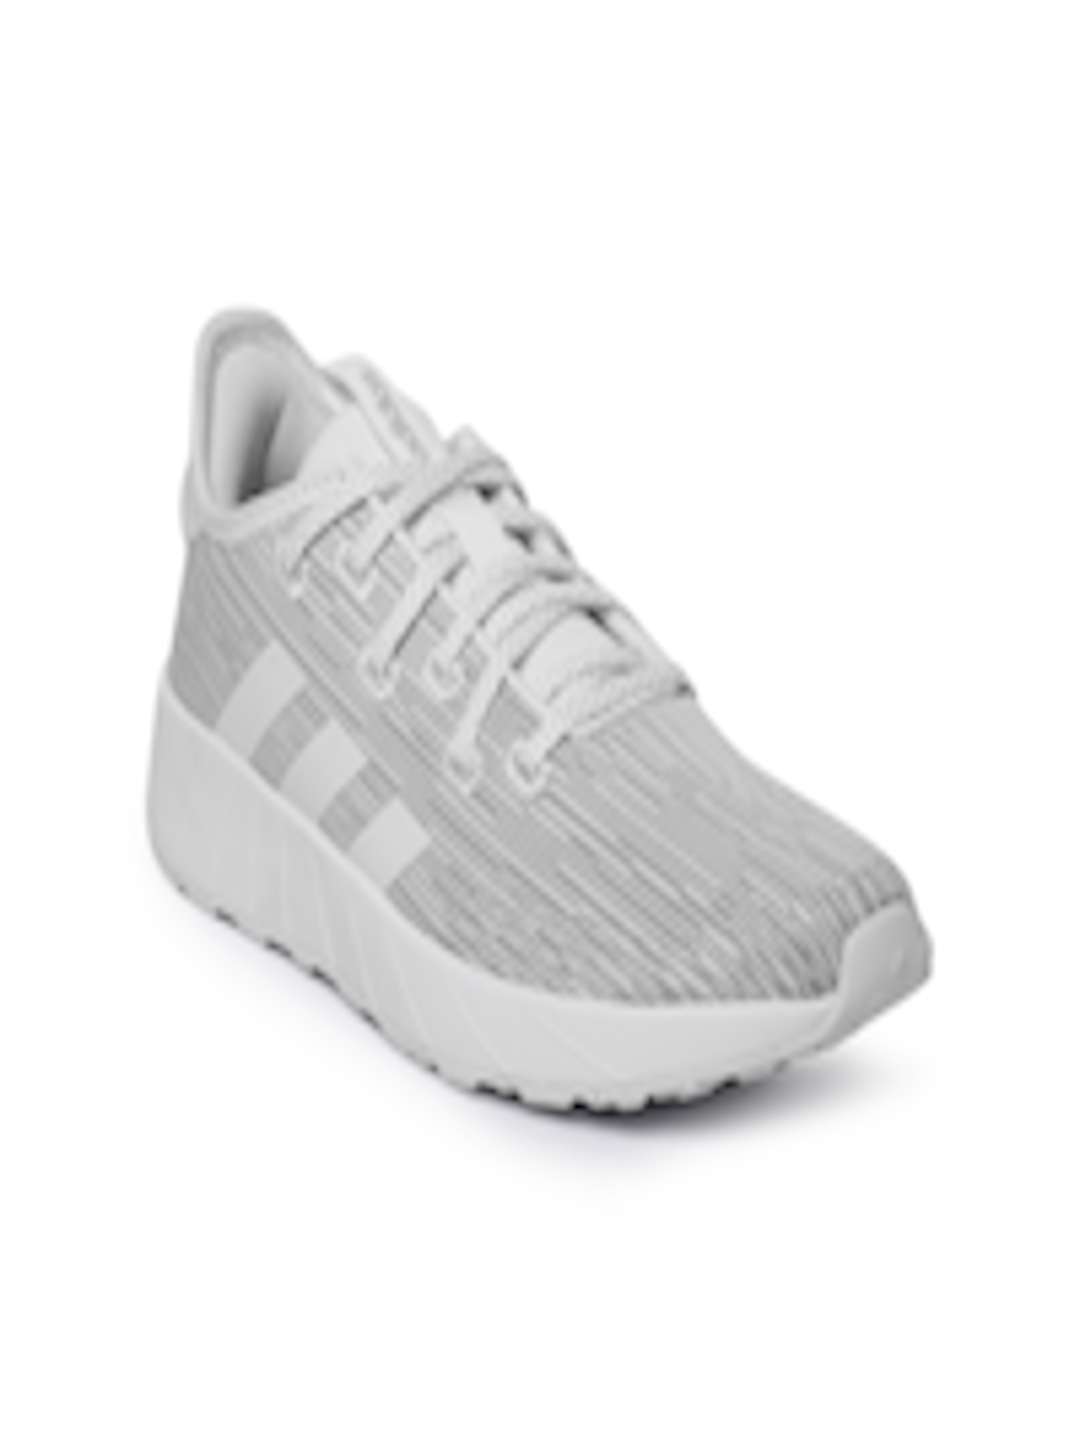 san francisco classic styles get online Buy ADIDAS Women White QUESTAR X BYD Running Shoes - - Footwear for Women